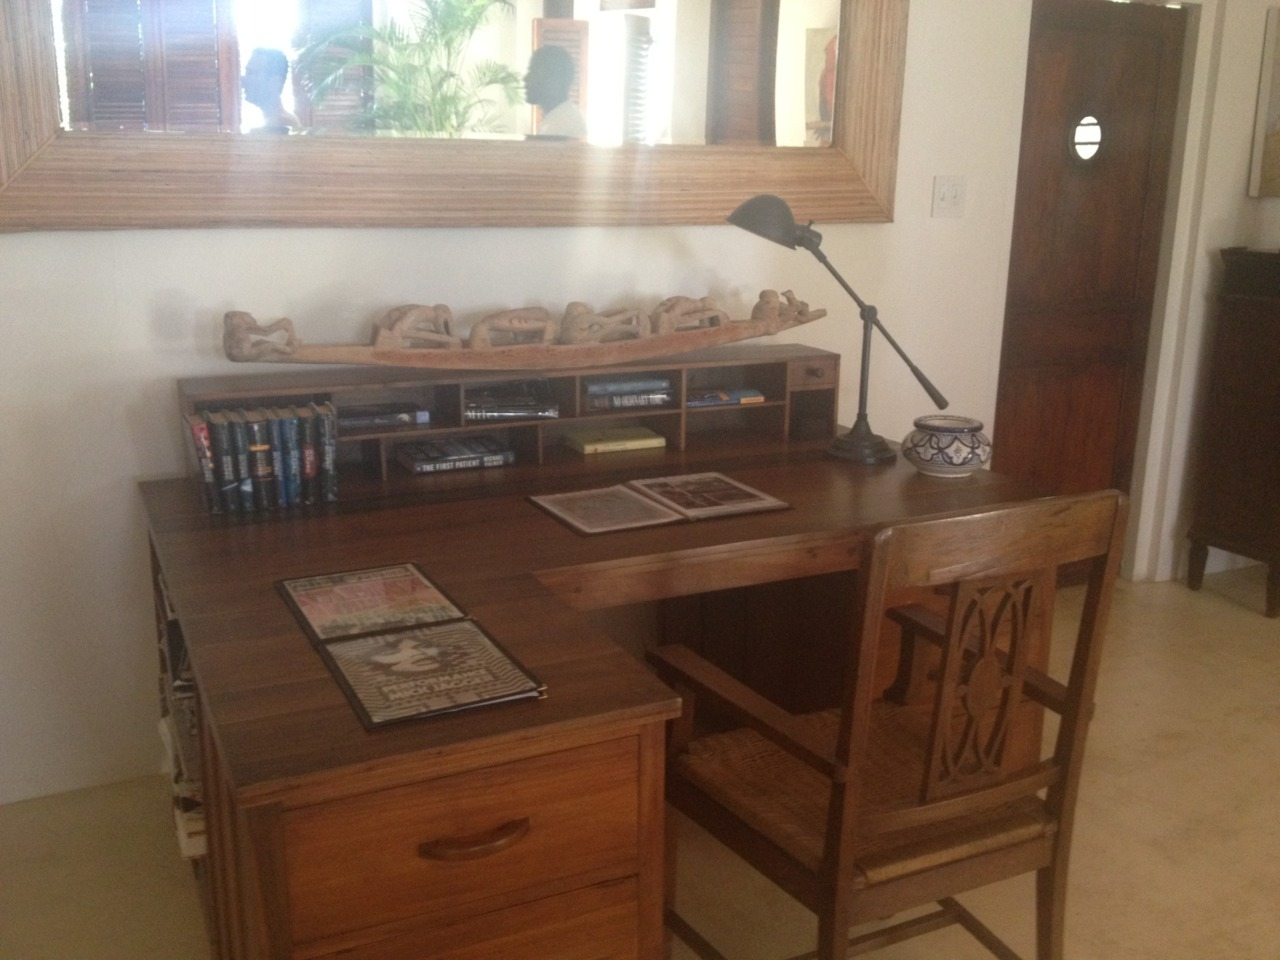 poplipps:  The desk where James Bond was written……